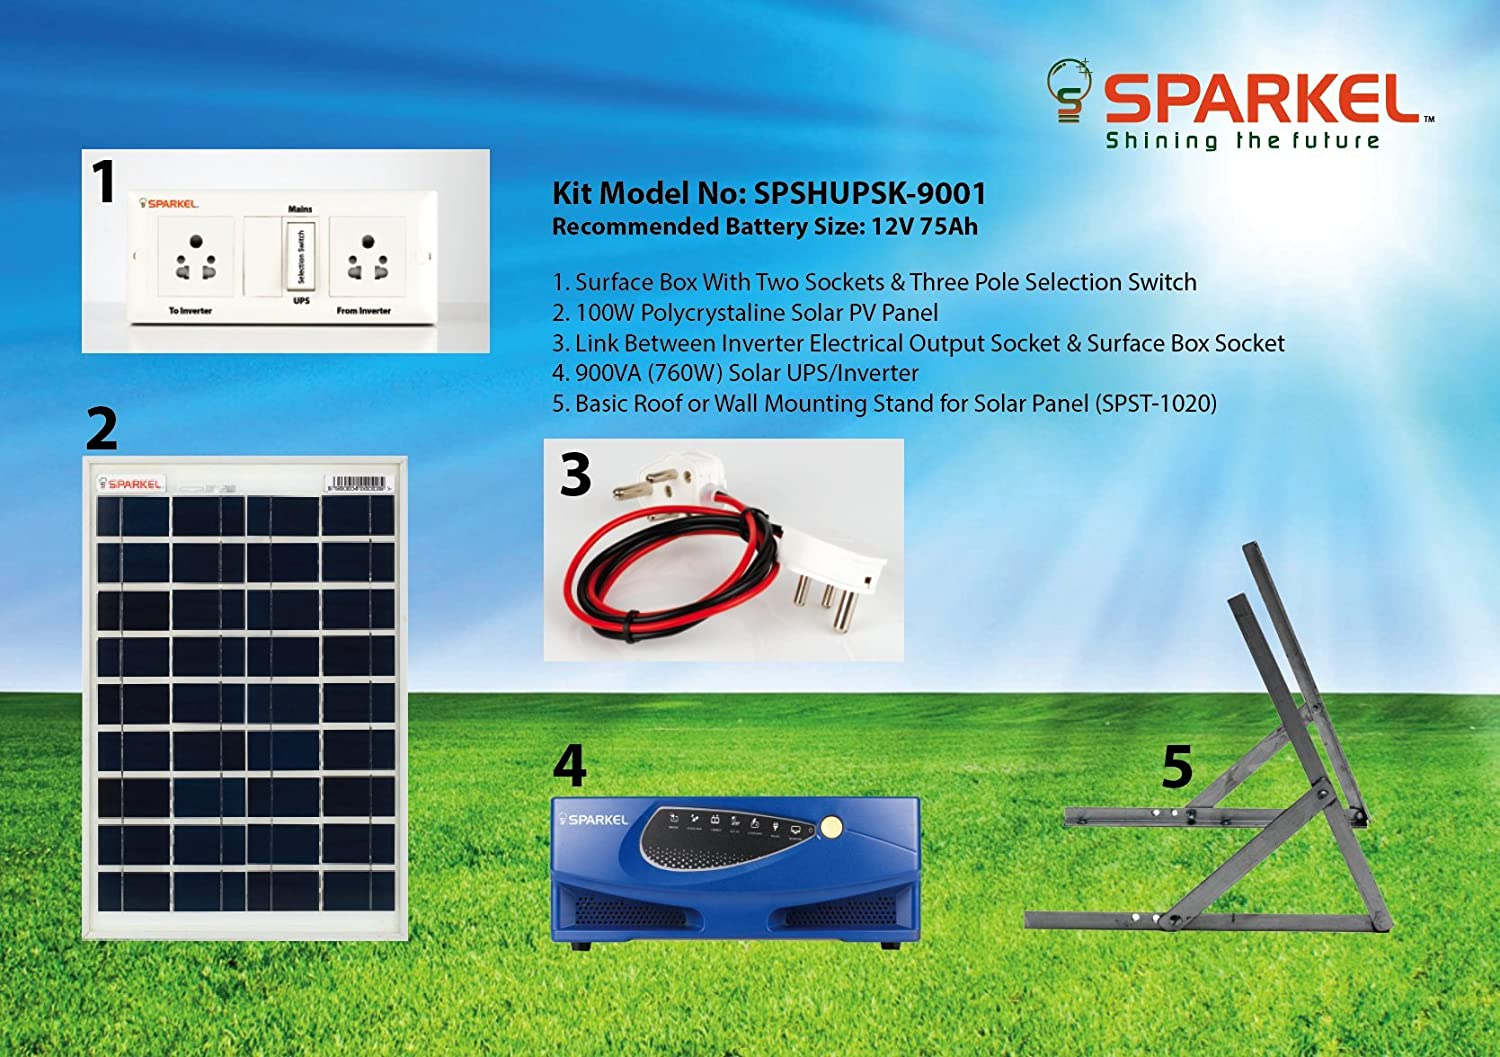 Sparkel Solar Home Ups Inverter Kit 900va 760w With 100w Panel 100 W Circuit Diagram Without Battery Spshupsk 9000 Garden Outdoors